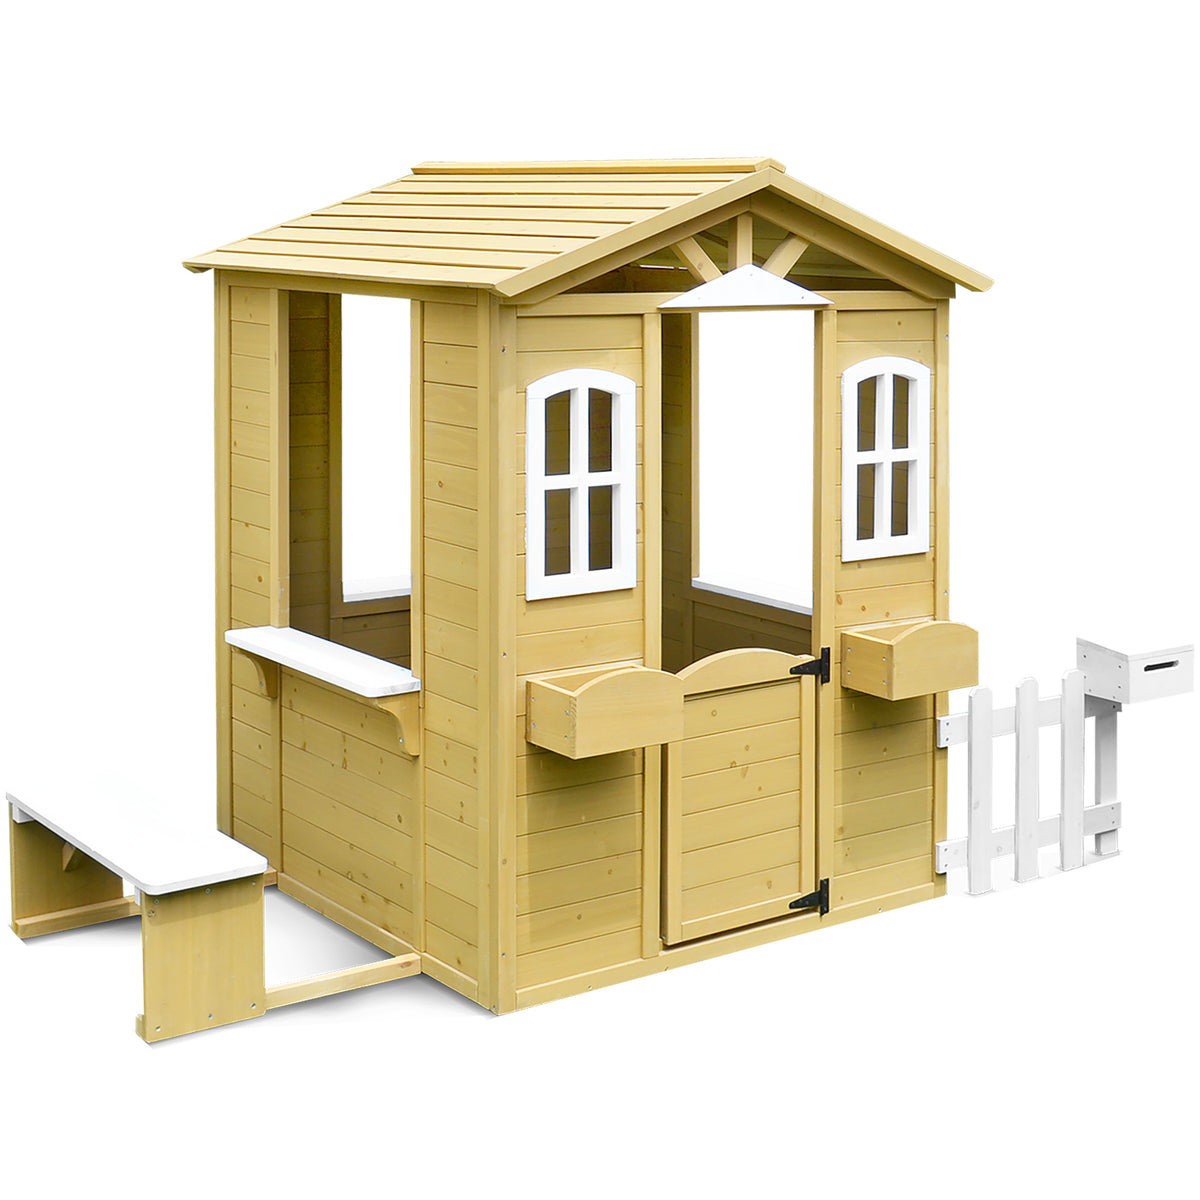 Lifespan Kids Teddy Cubby House with Picket Fence